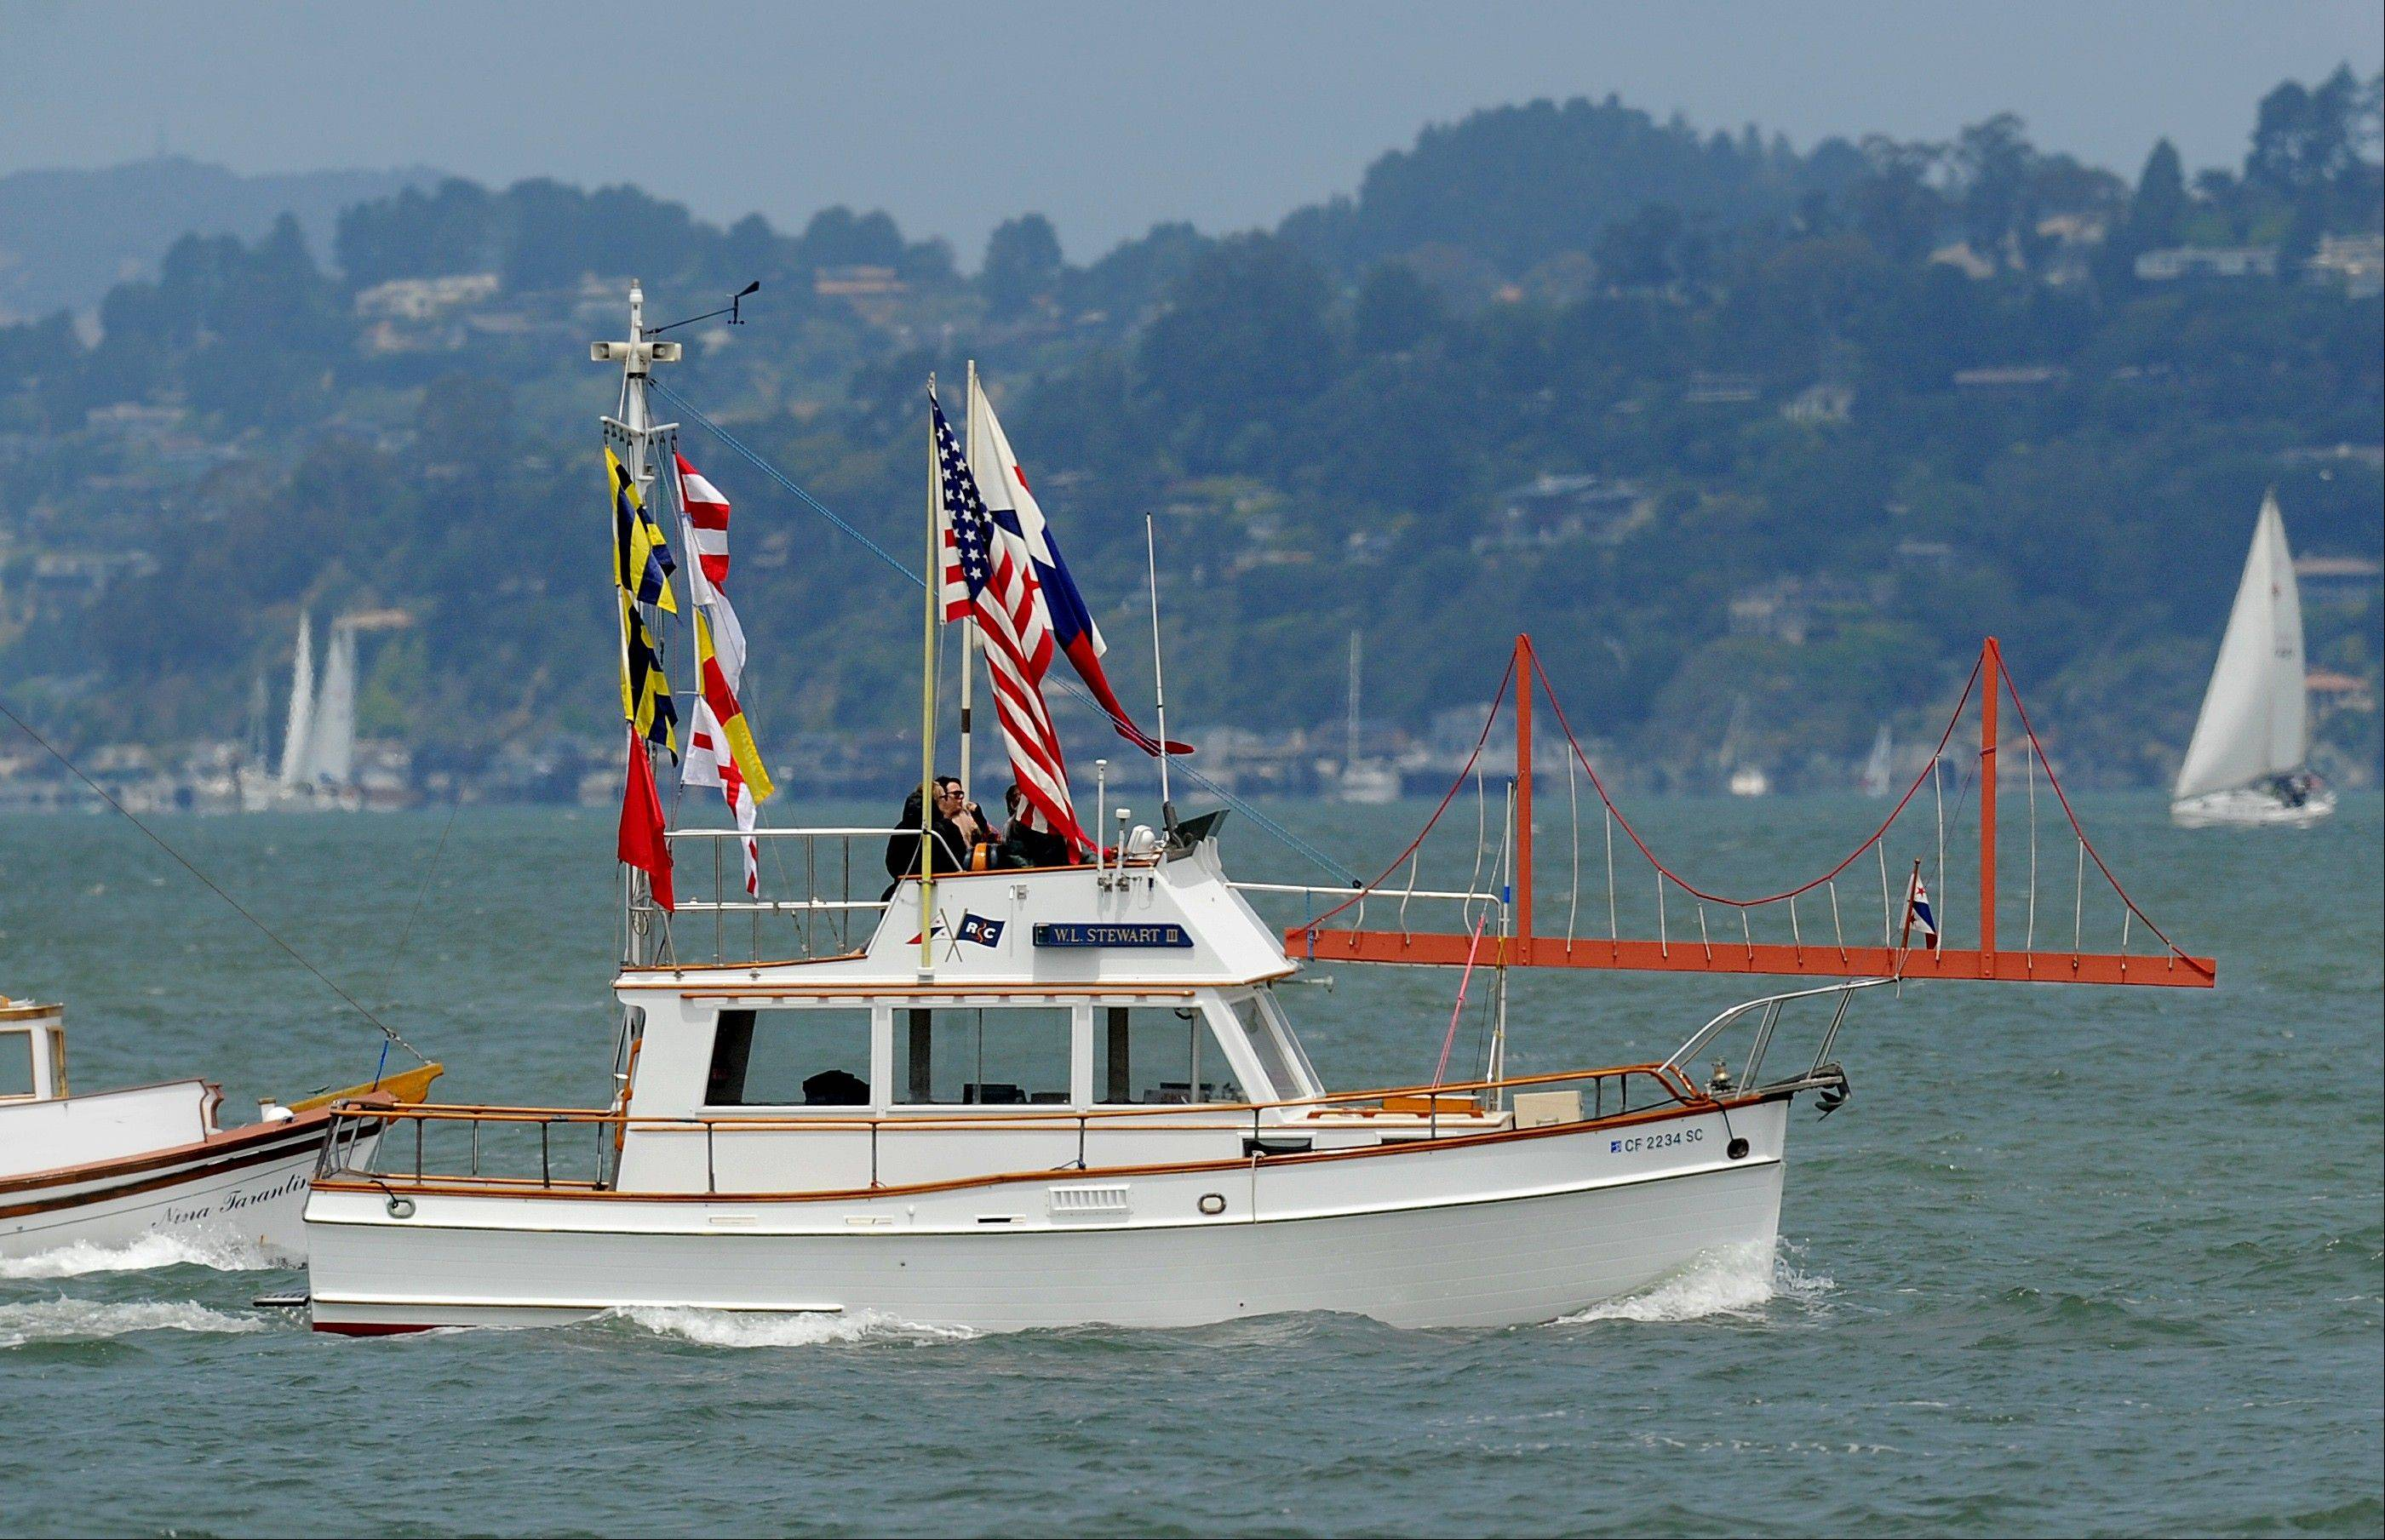 With a sculpture of the Golden Gate Bridge adorning her foredeck, the W.L. Stewart III rides in a boat parade celebrating the Golden Gate Bridge's 75th anniversary on Sunday in San Francisco. The commemoration included a vintage car show, an exhibit of roughly 1,558 pairs of shoes representing people who have committed suicide by jumping from the span, and a fireworks display slated for evening.